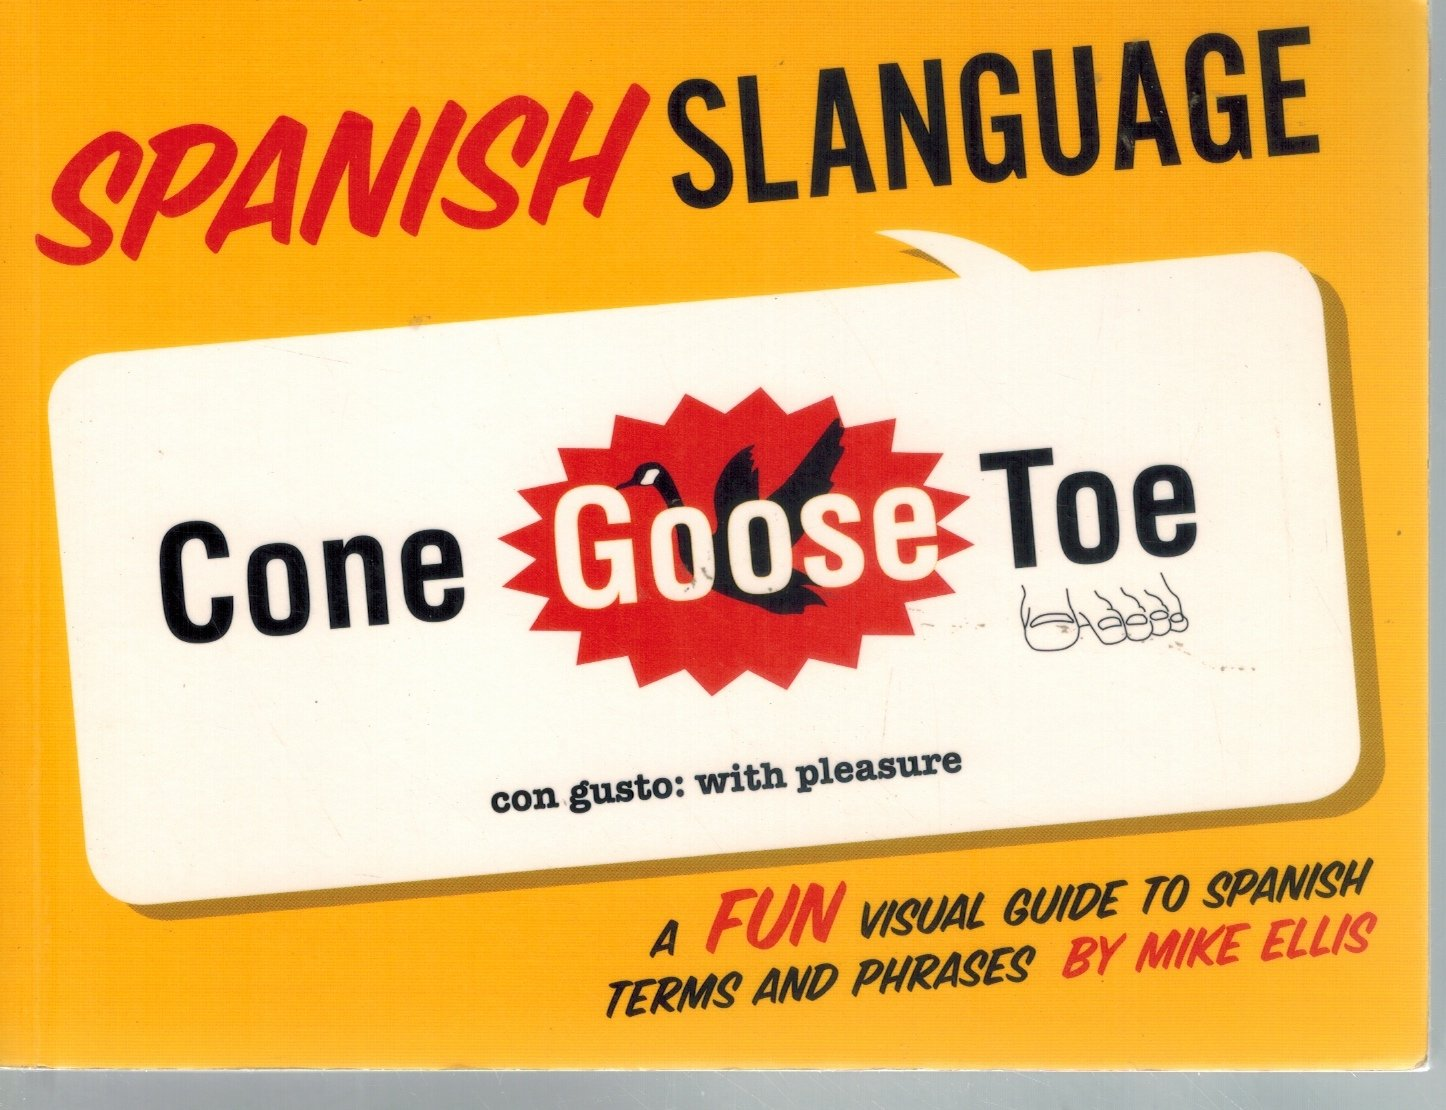 SPANISH SLANGUAGE  A Fun Visual Guide to Spanish Terms and Phrases